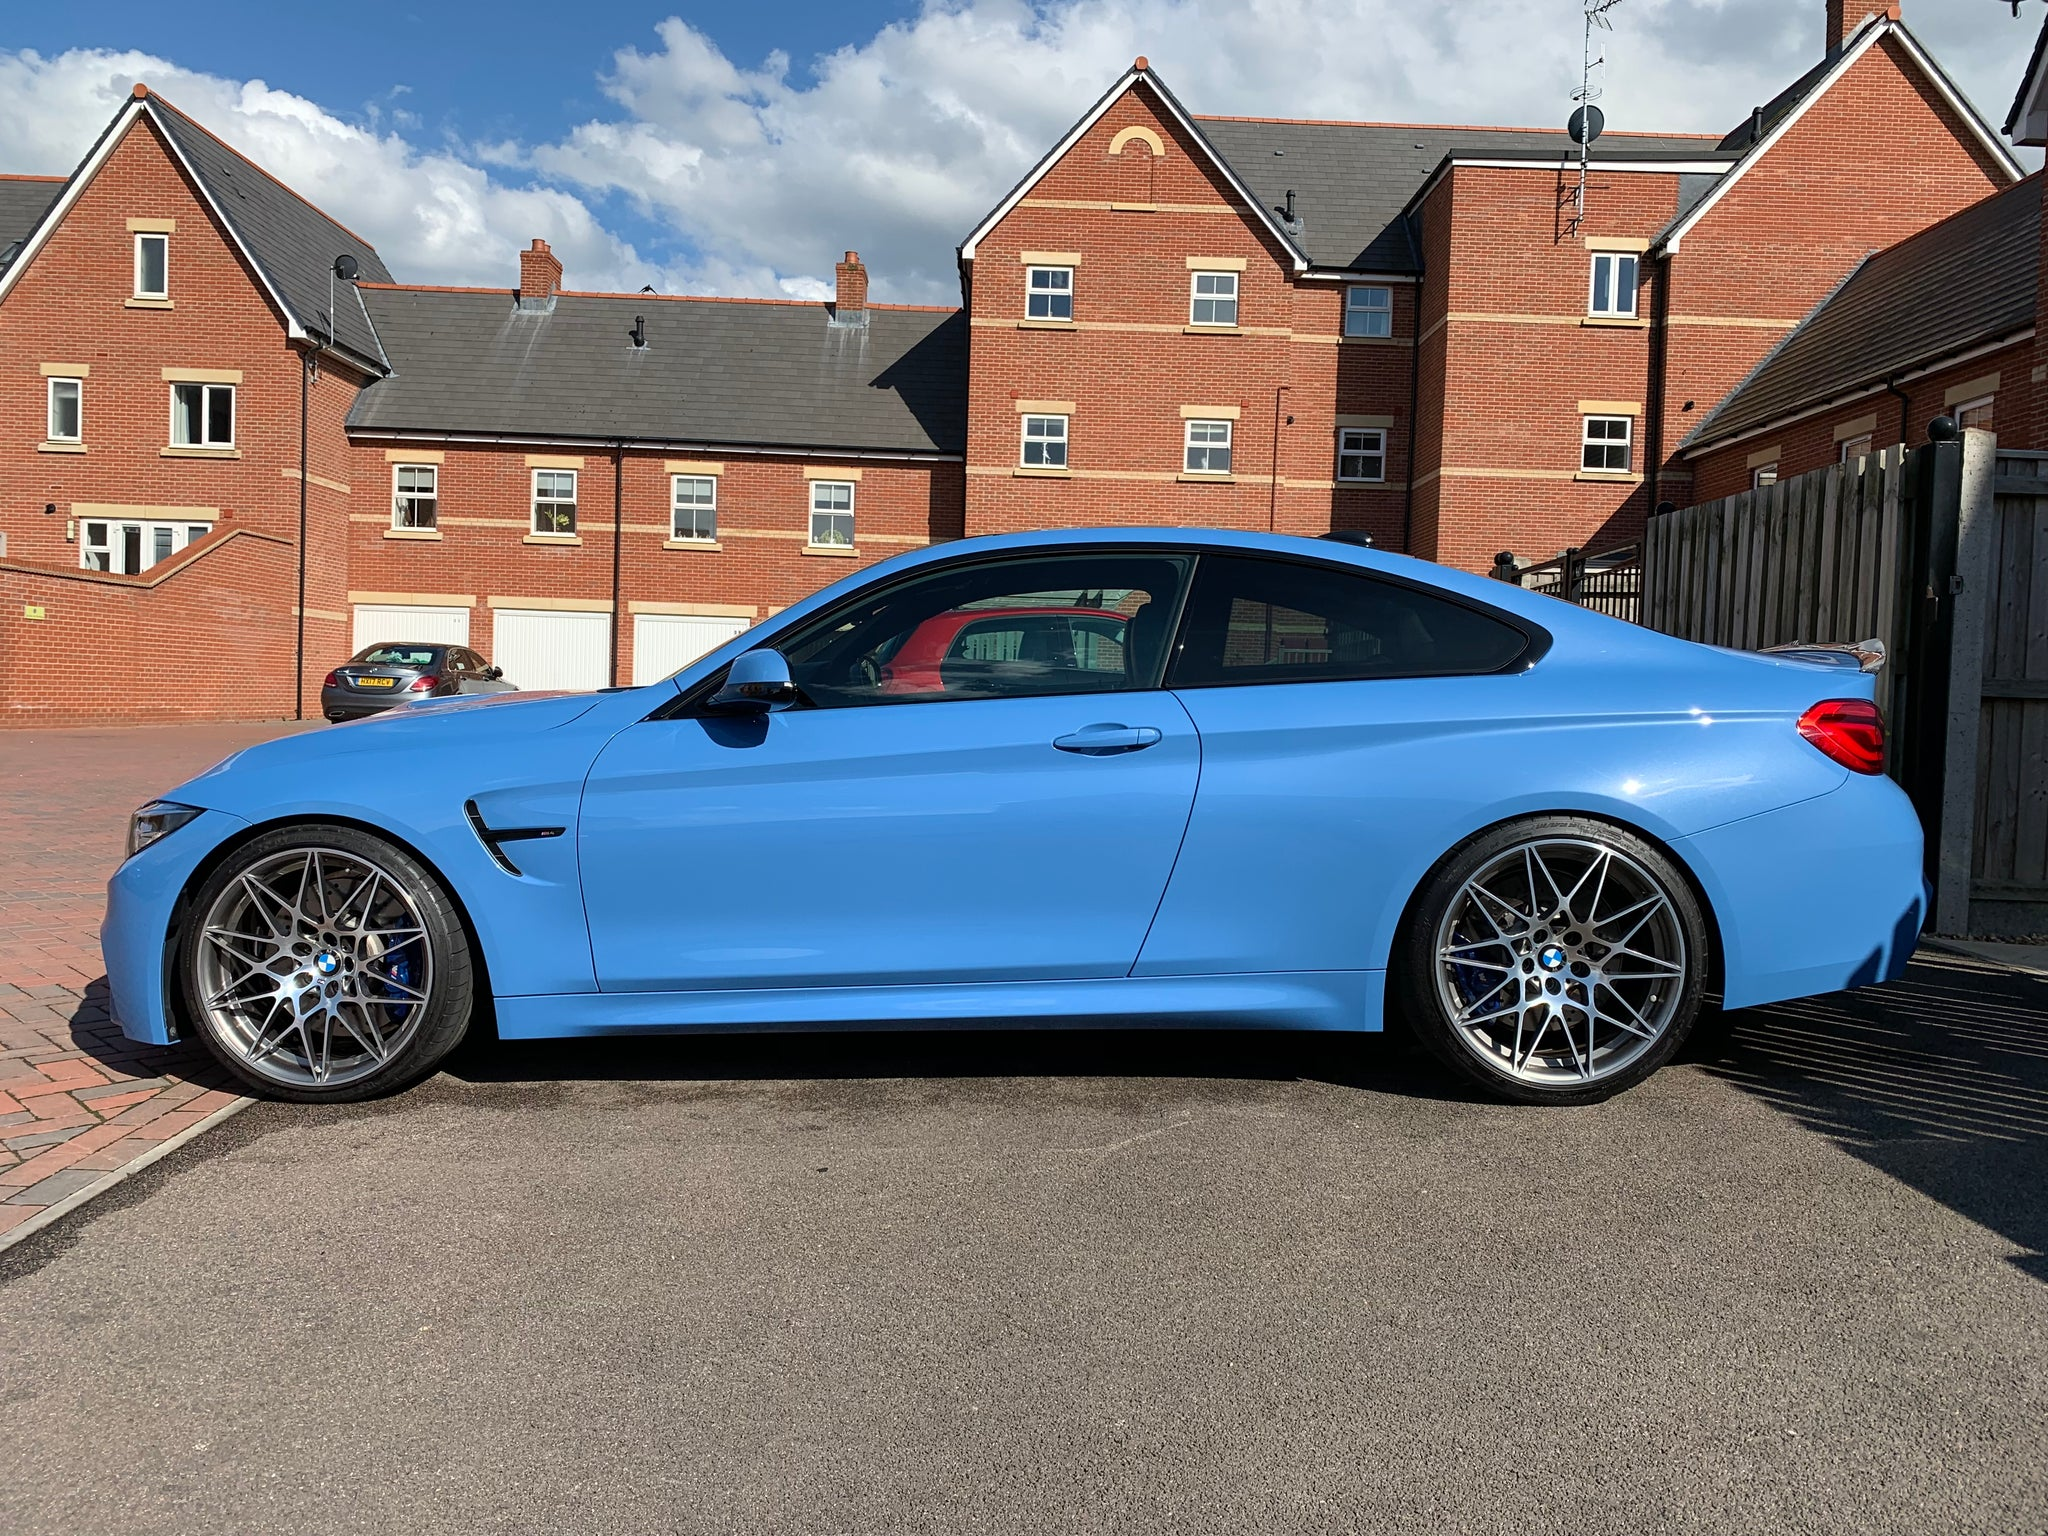 H&R BMW F30 F32 F82 35MM/40-45MM LOWERING SPRINGS (335I, 340I, 430I, 440I & M4) - Edgaras N. from M3/M4 UK Owners Club